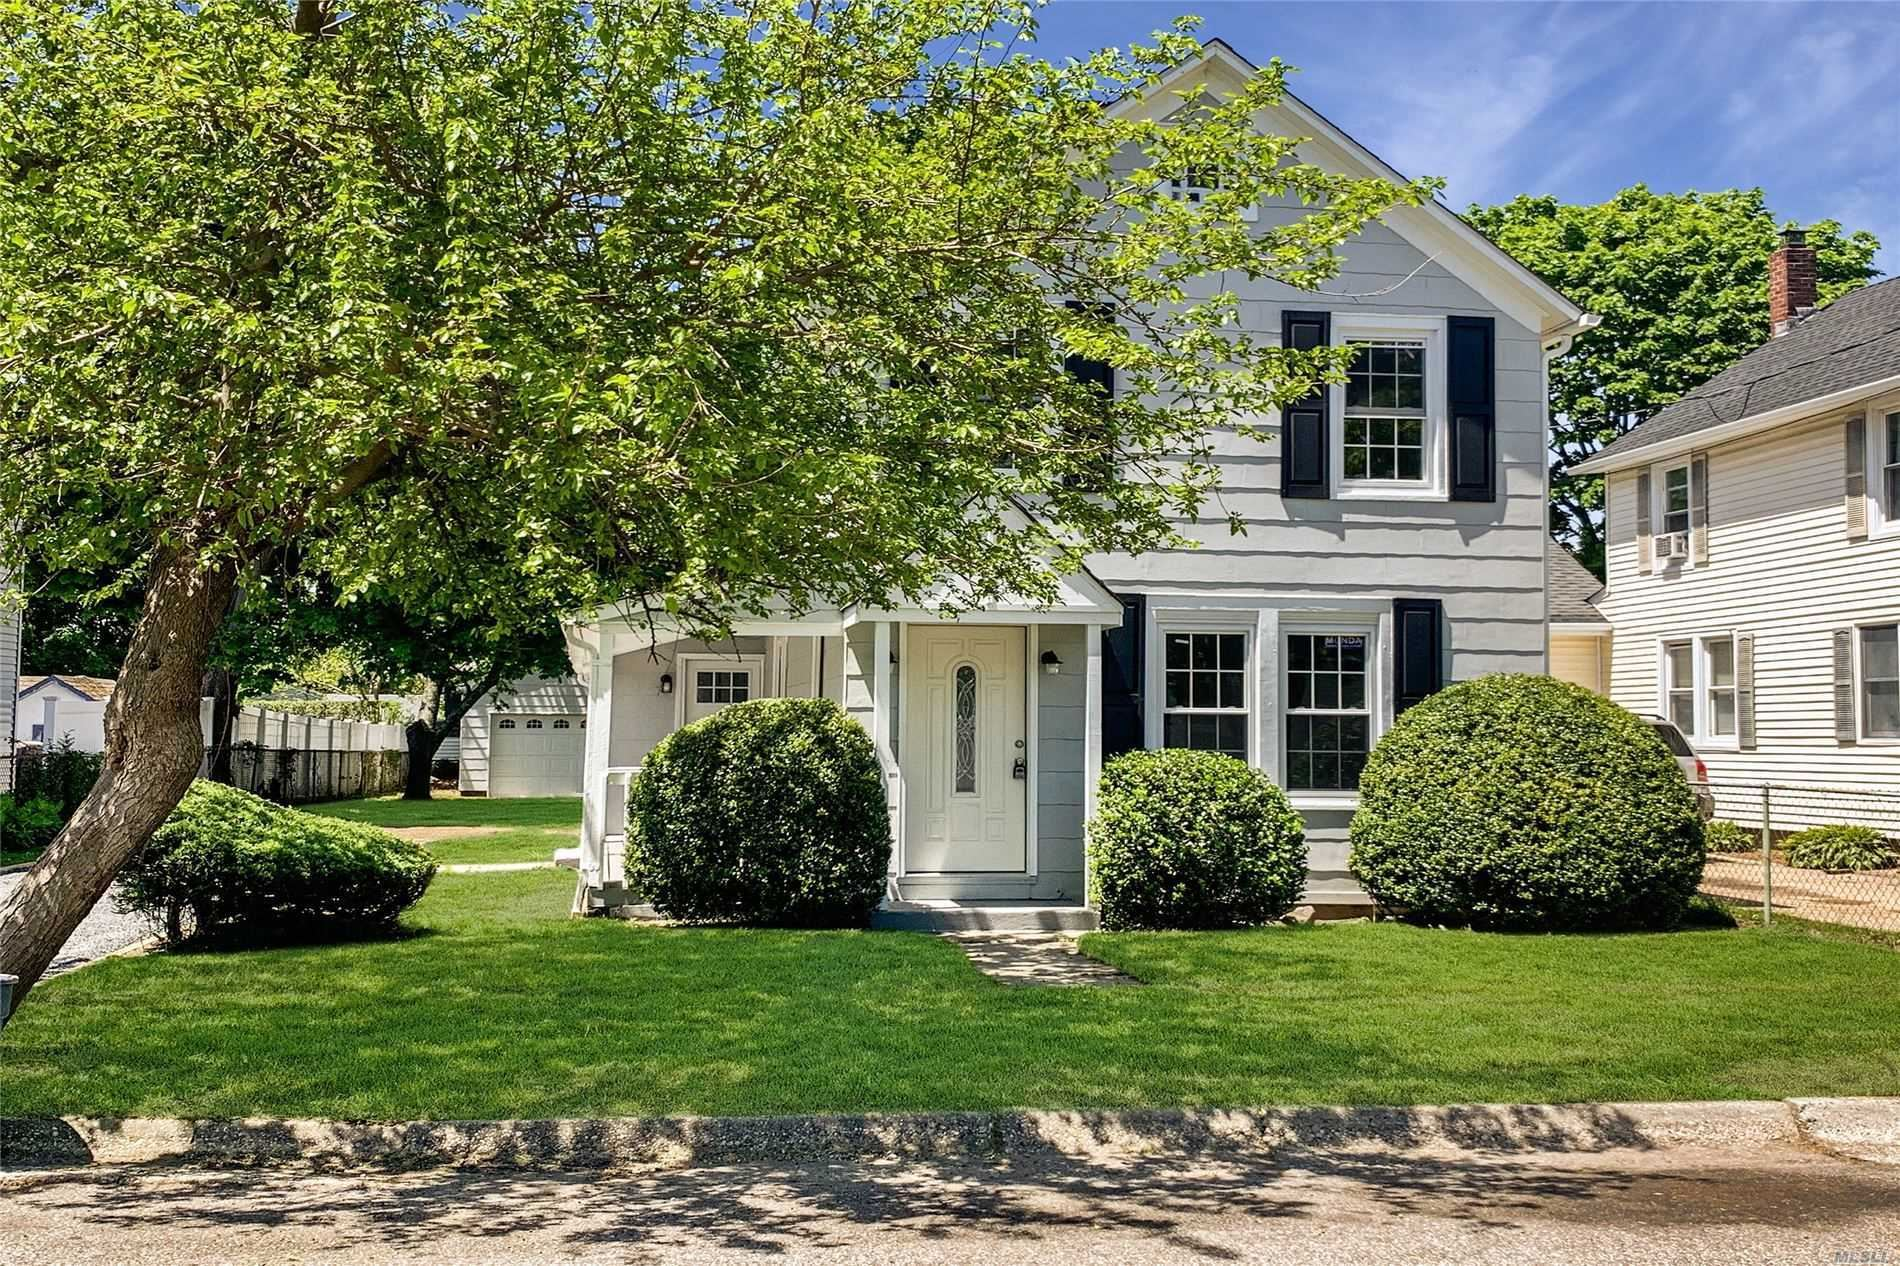 50 Evergreen Ave, Patchogue, NY 11772 - MLS#: 3218416